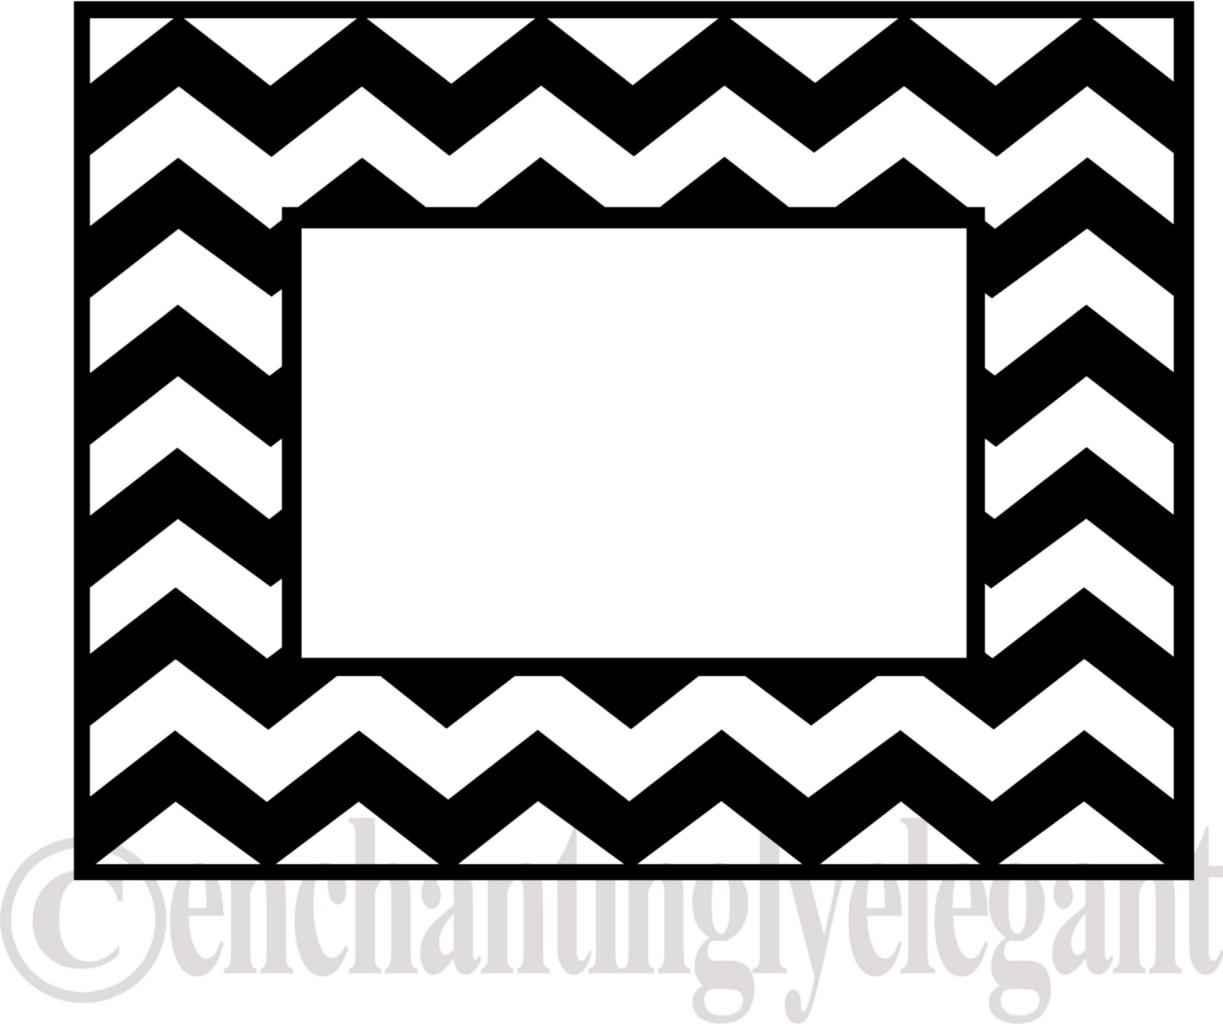 Chevron Template For Word -with-chevron-pattern-teen